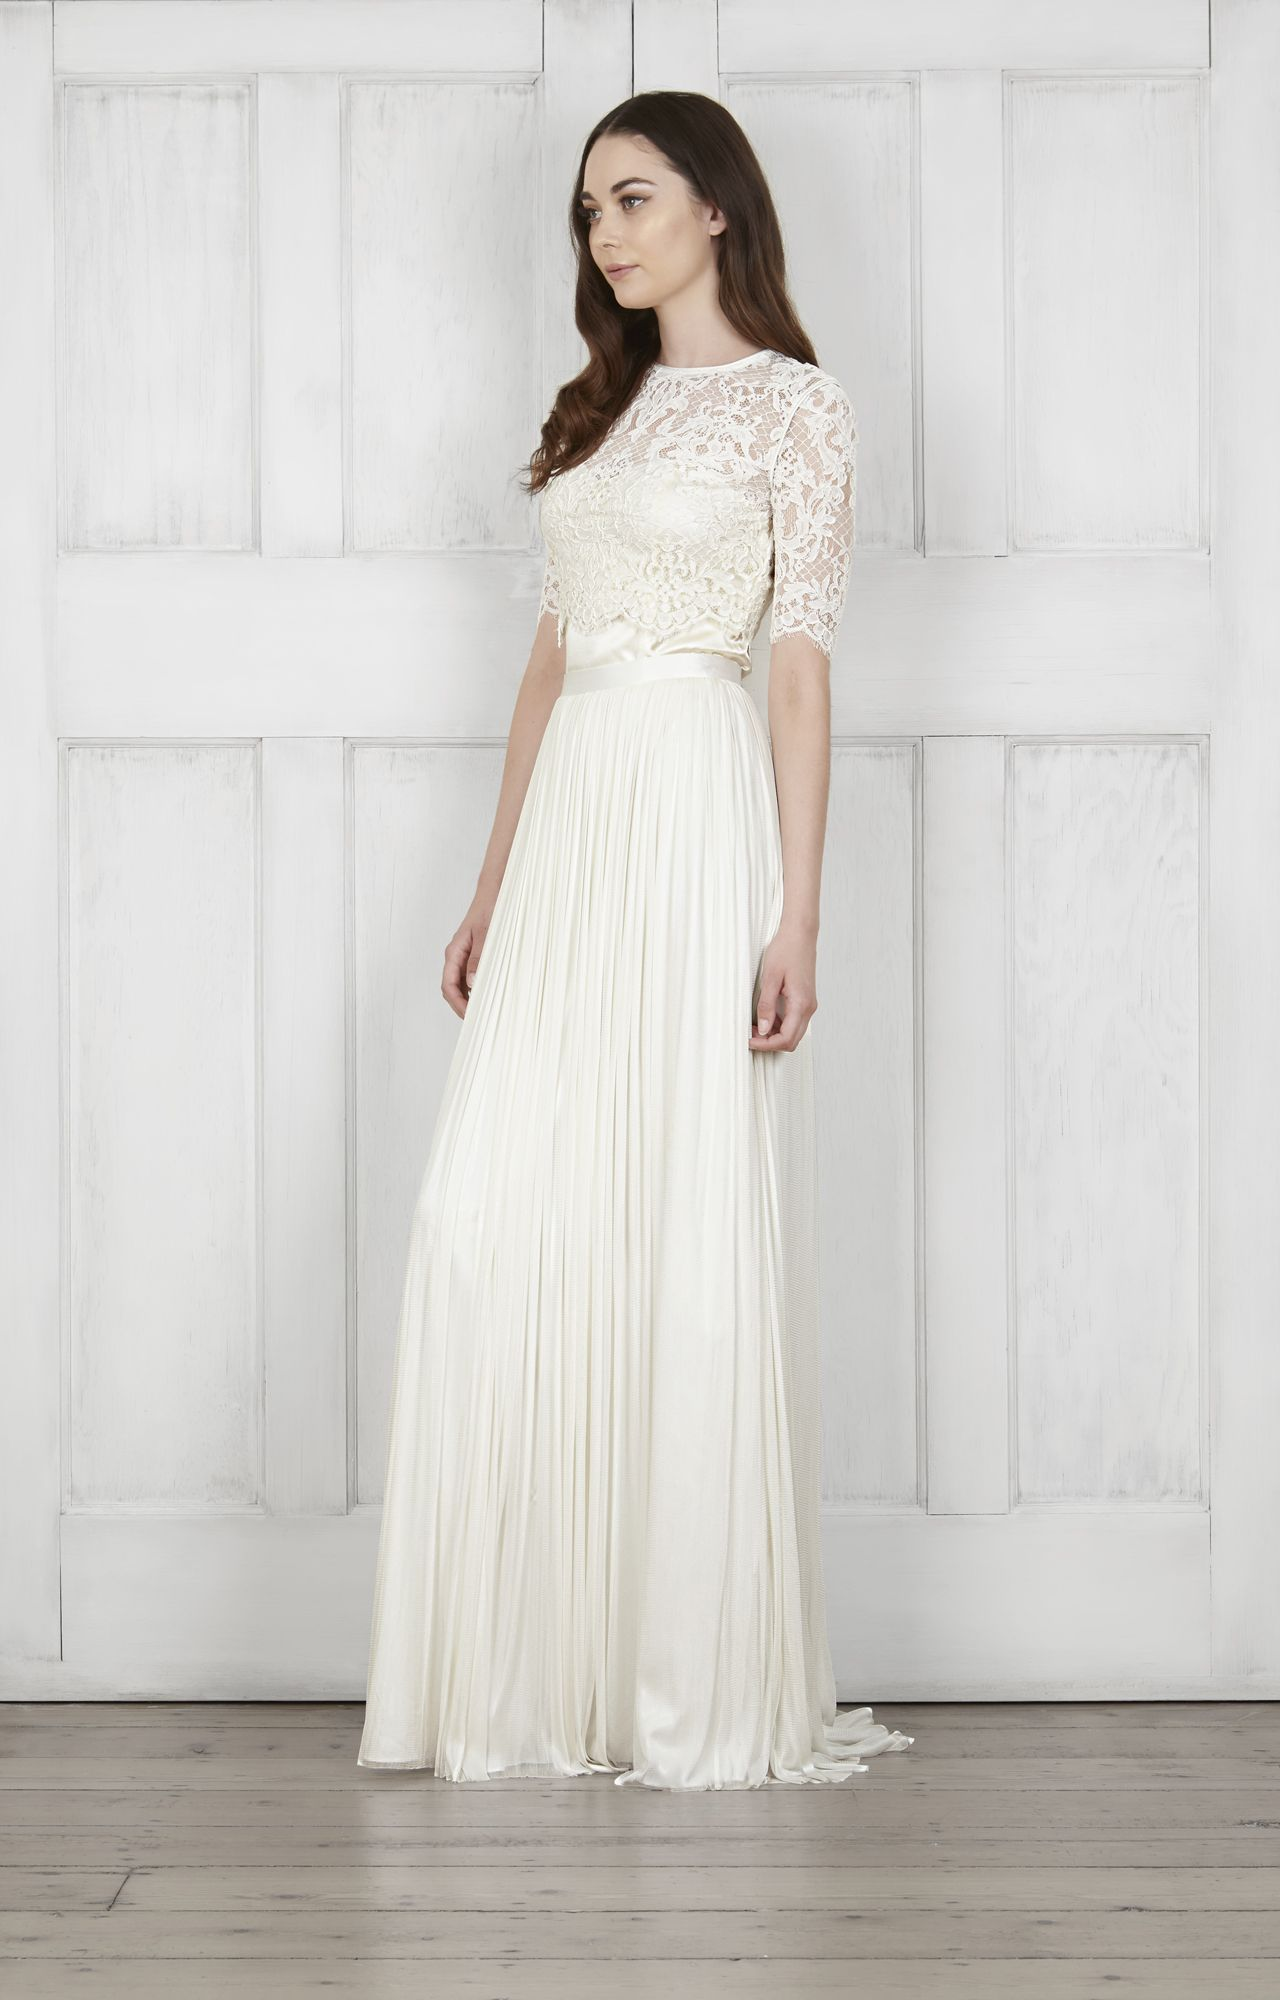 The Stunning Catherine Deane Separates Collection Wedding